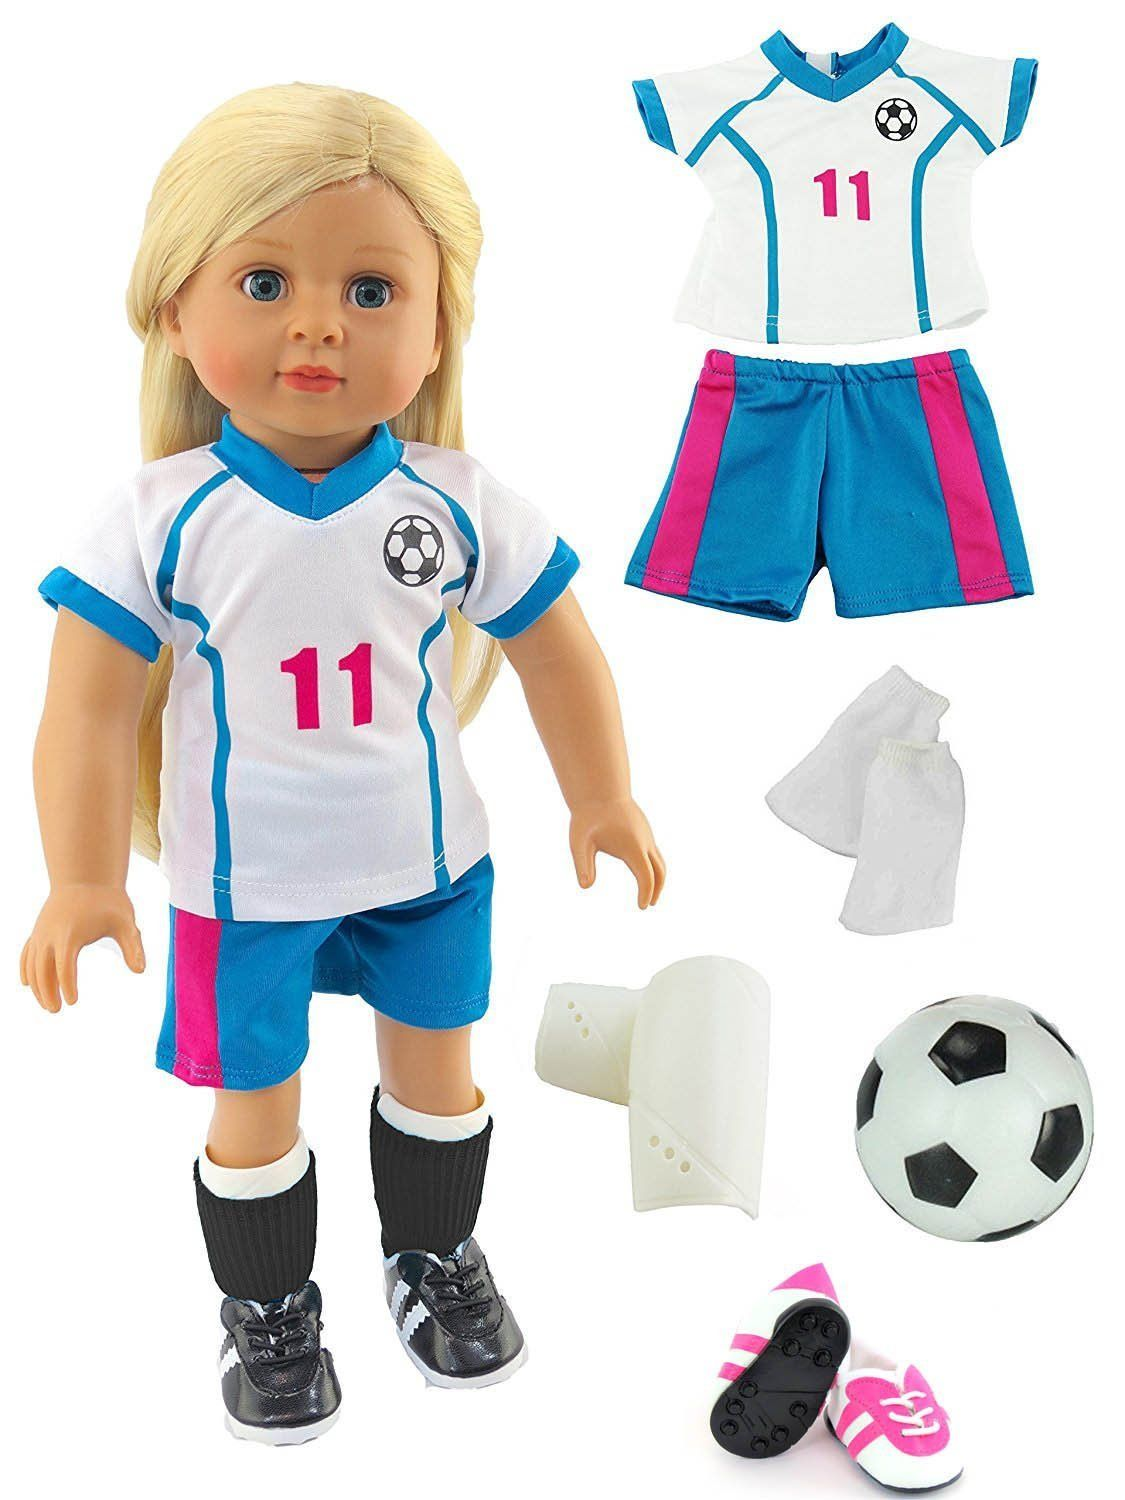 e8ddbee43 Pink & Teal Soccer Player Outfit with Uniform, Shin Guards, Socks, Soccer  Ball, and Shoes for 18-inch dolls